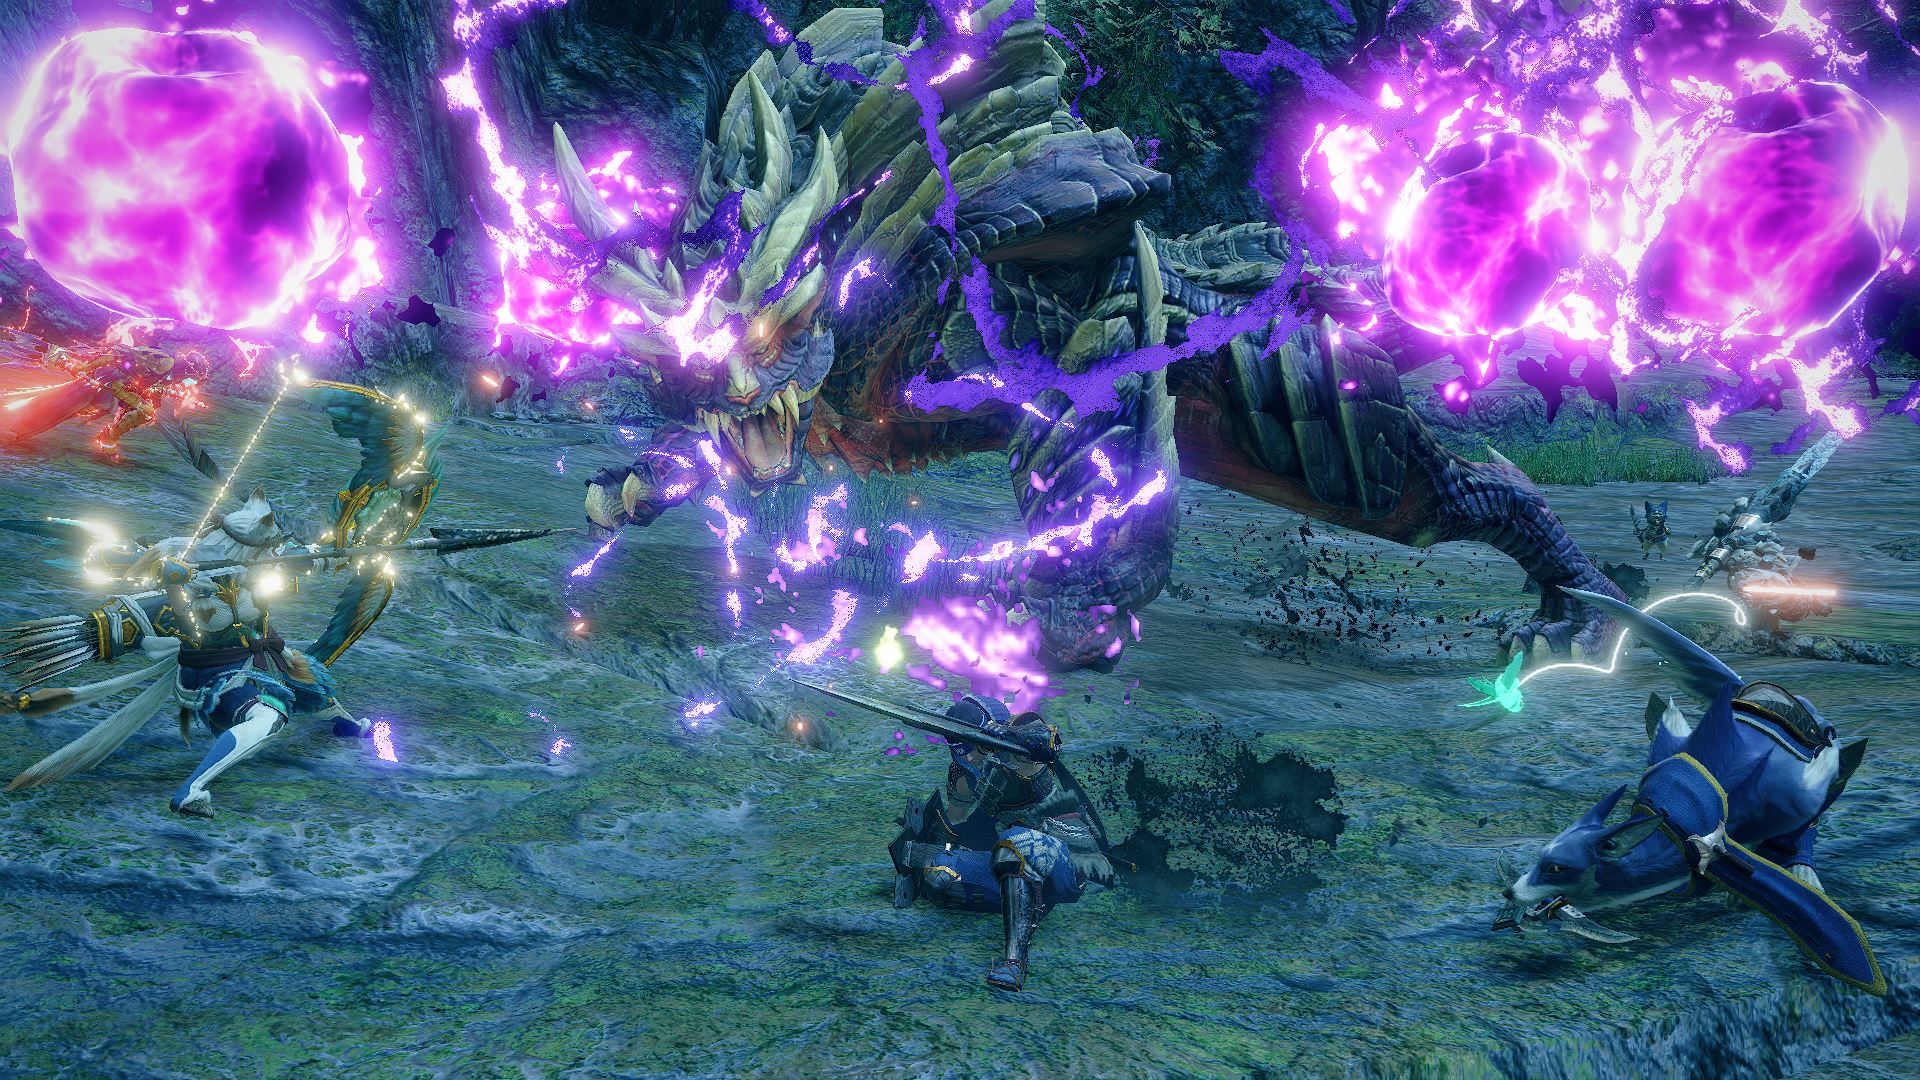 Monster Hunter Rise screenshot depicting several hunters and their canine companions battling a large dragon-like beast, as purple lighting orbs whirl in the air.